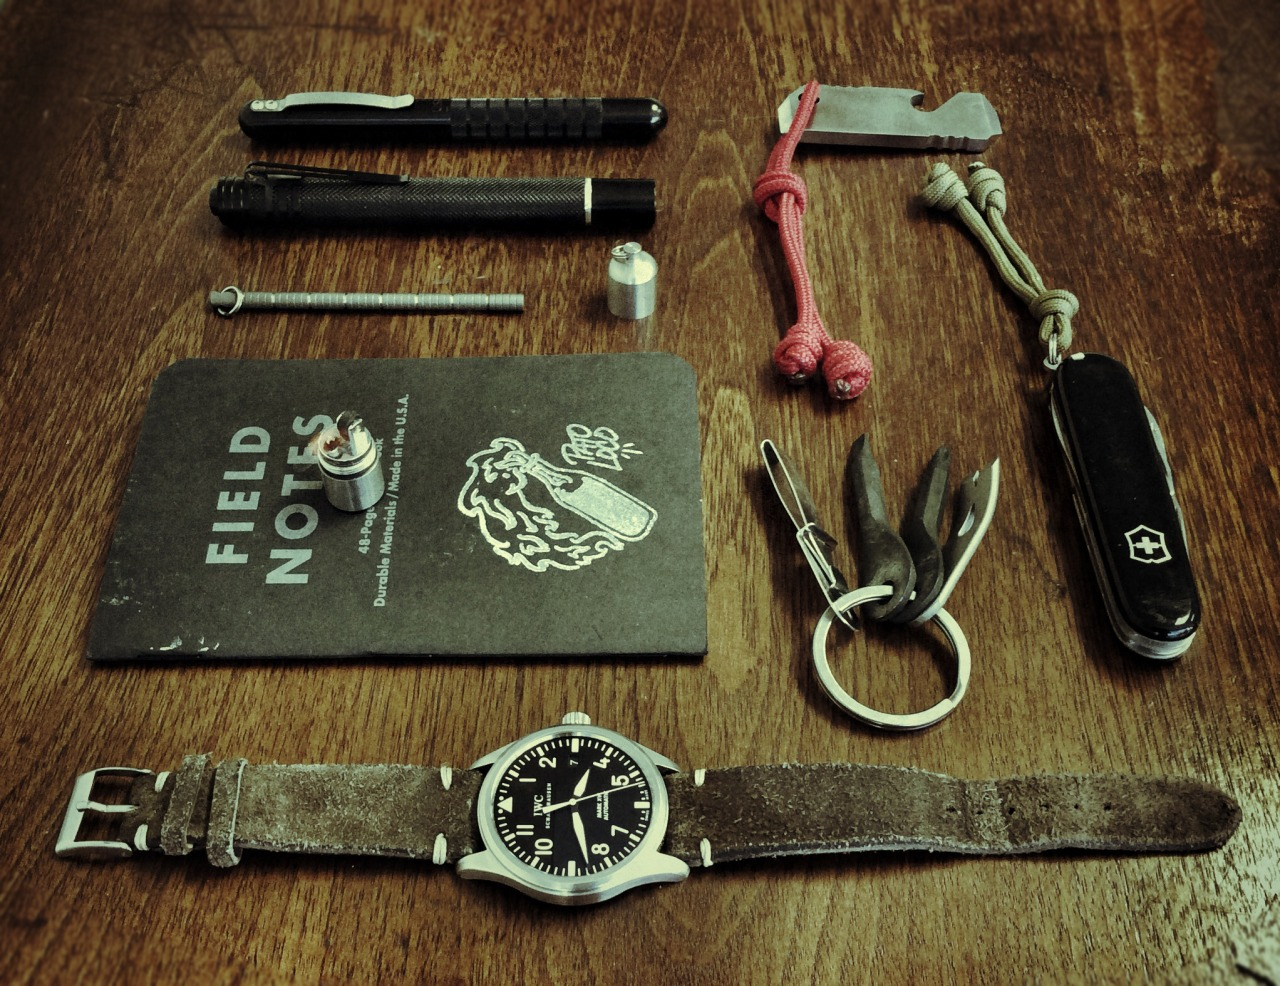 thenewartemis :      Artemis: Nice! Love the tones and textures in this photo. Can you tell me a bit more about the tools on your keyring? Did you make your paracord monkey fists yourself? I like that they add some personality to your EDC. Thanks for submitting!